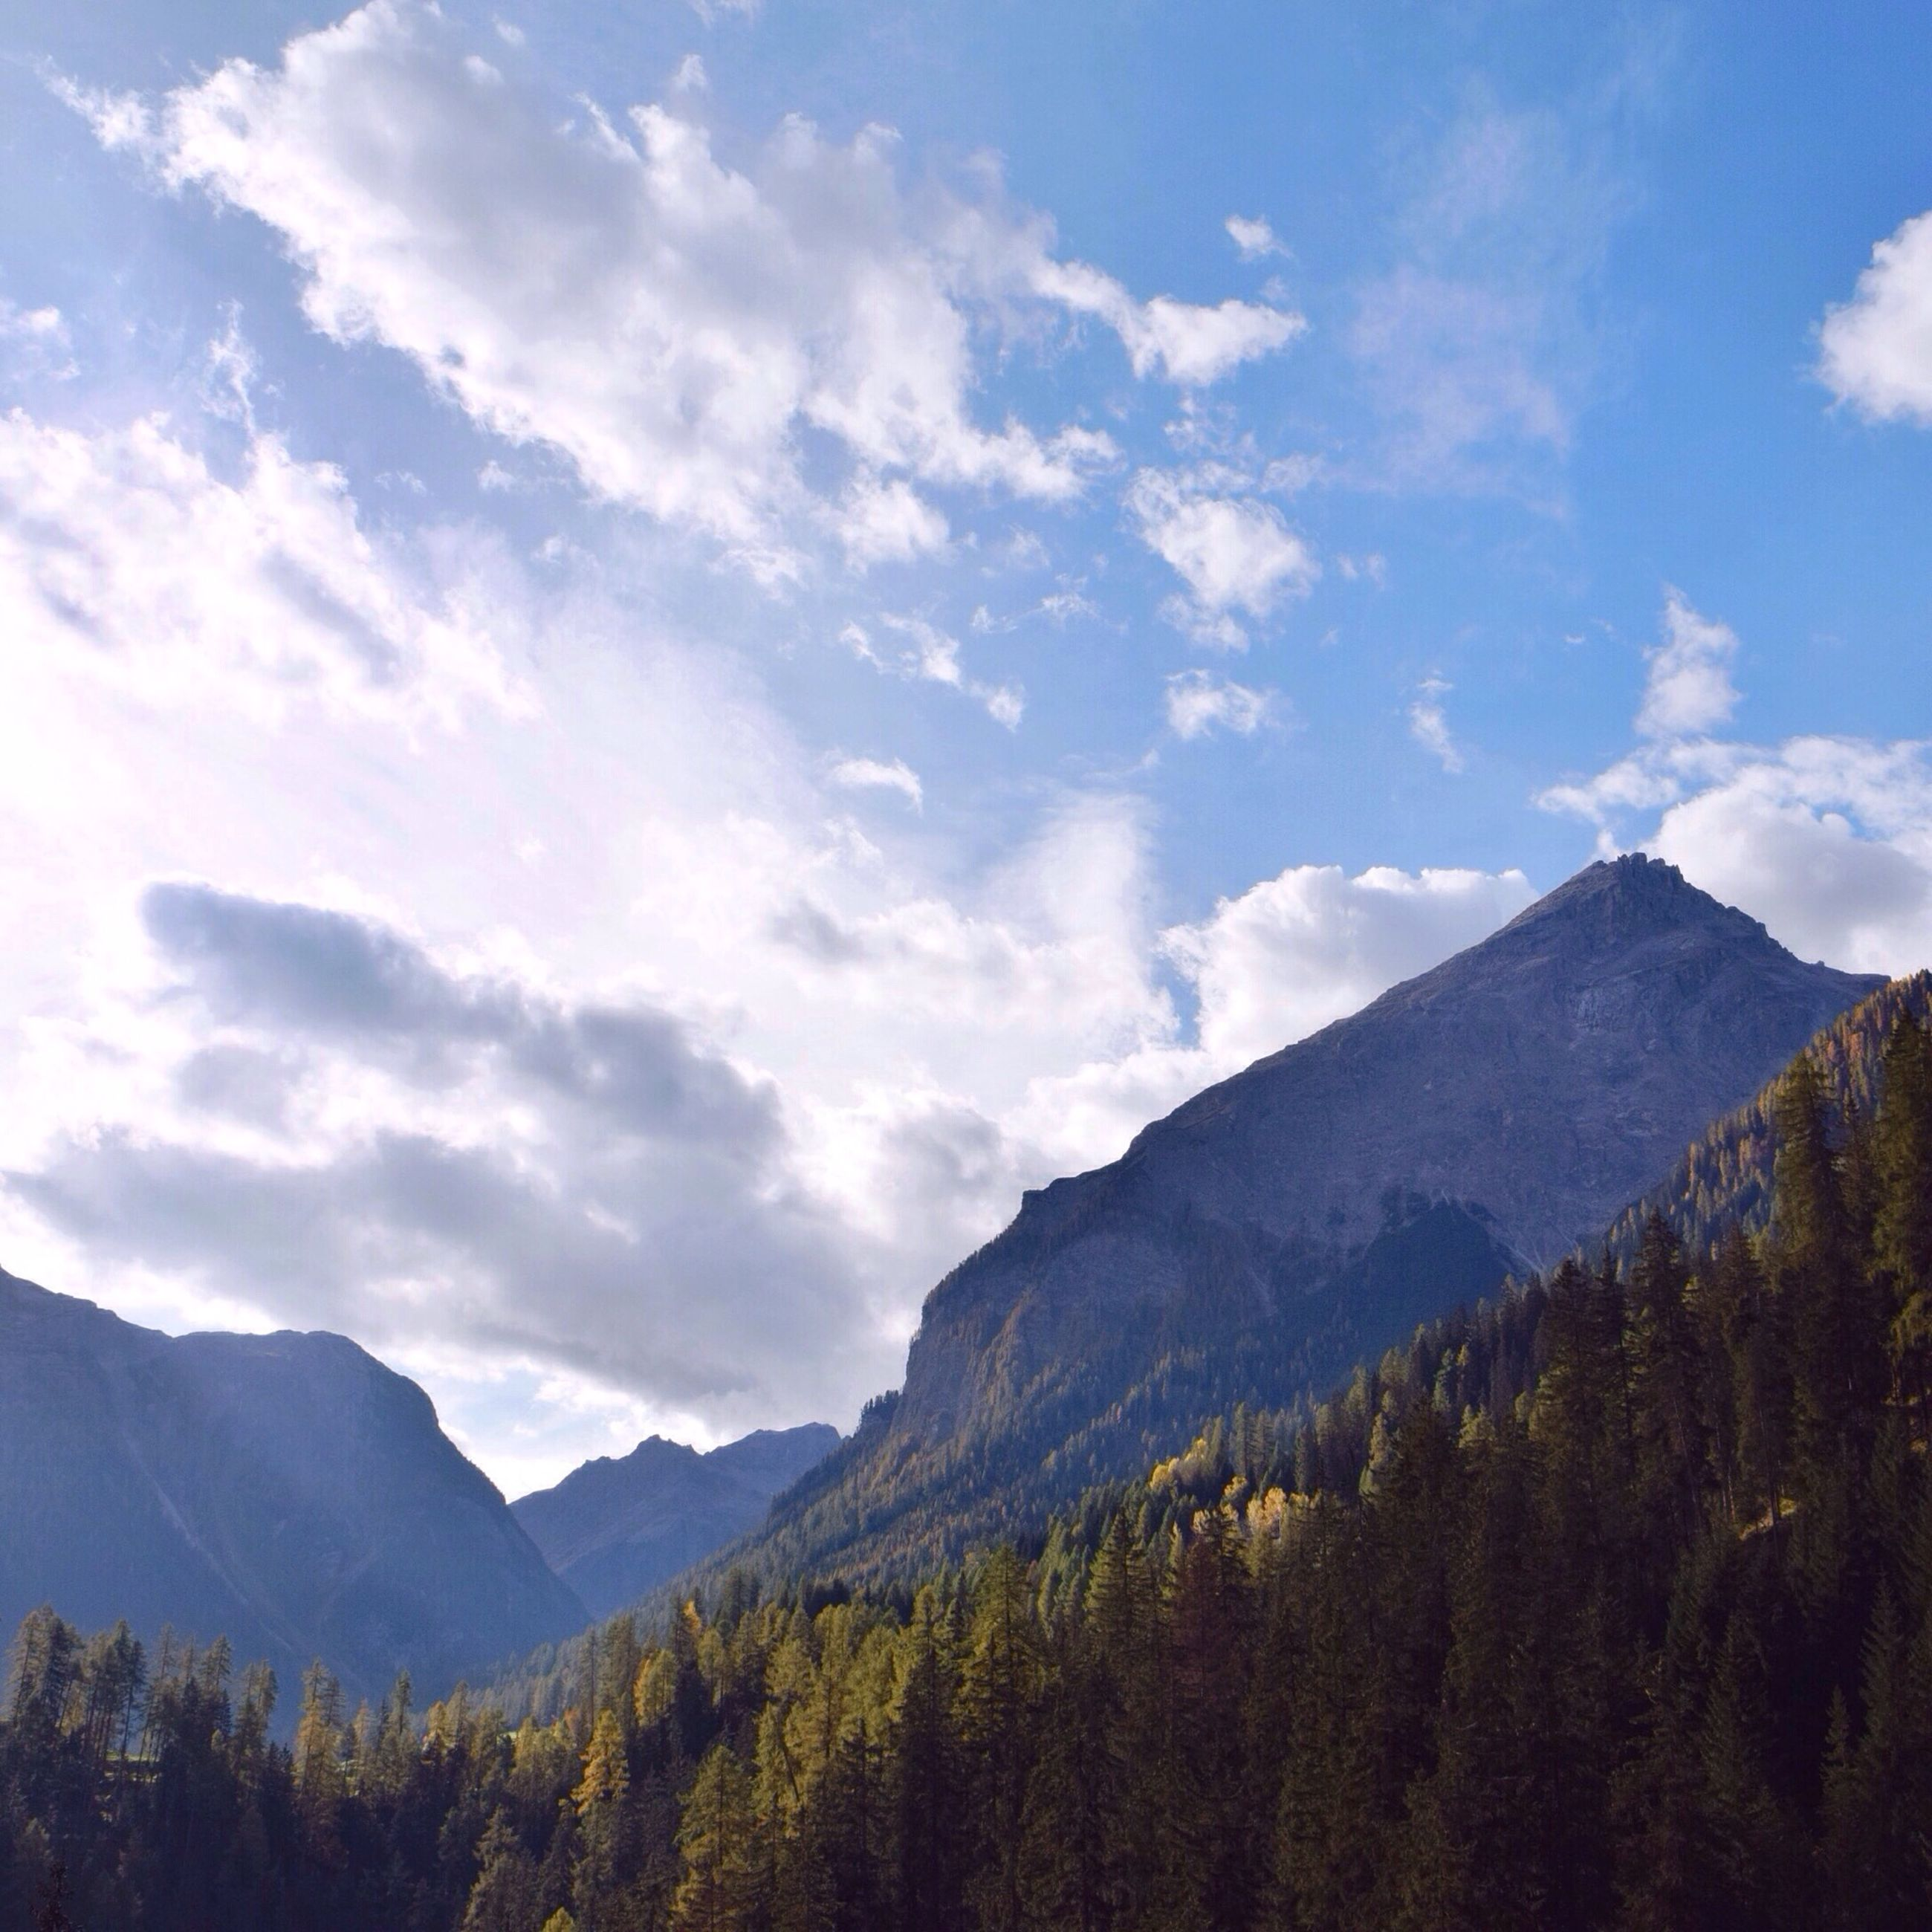 mountain, mountain range, tranquil scene, scenics, tranquility, sky, beauty in nature, landscape, nature, cloud - sky, cloud, non-urban scene, idyllic, tree, remote, outdoors, non urban scene, day, valley, no people